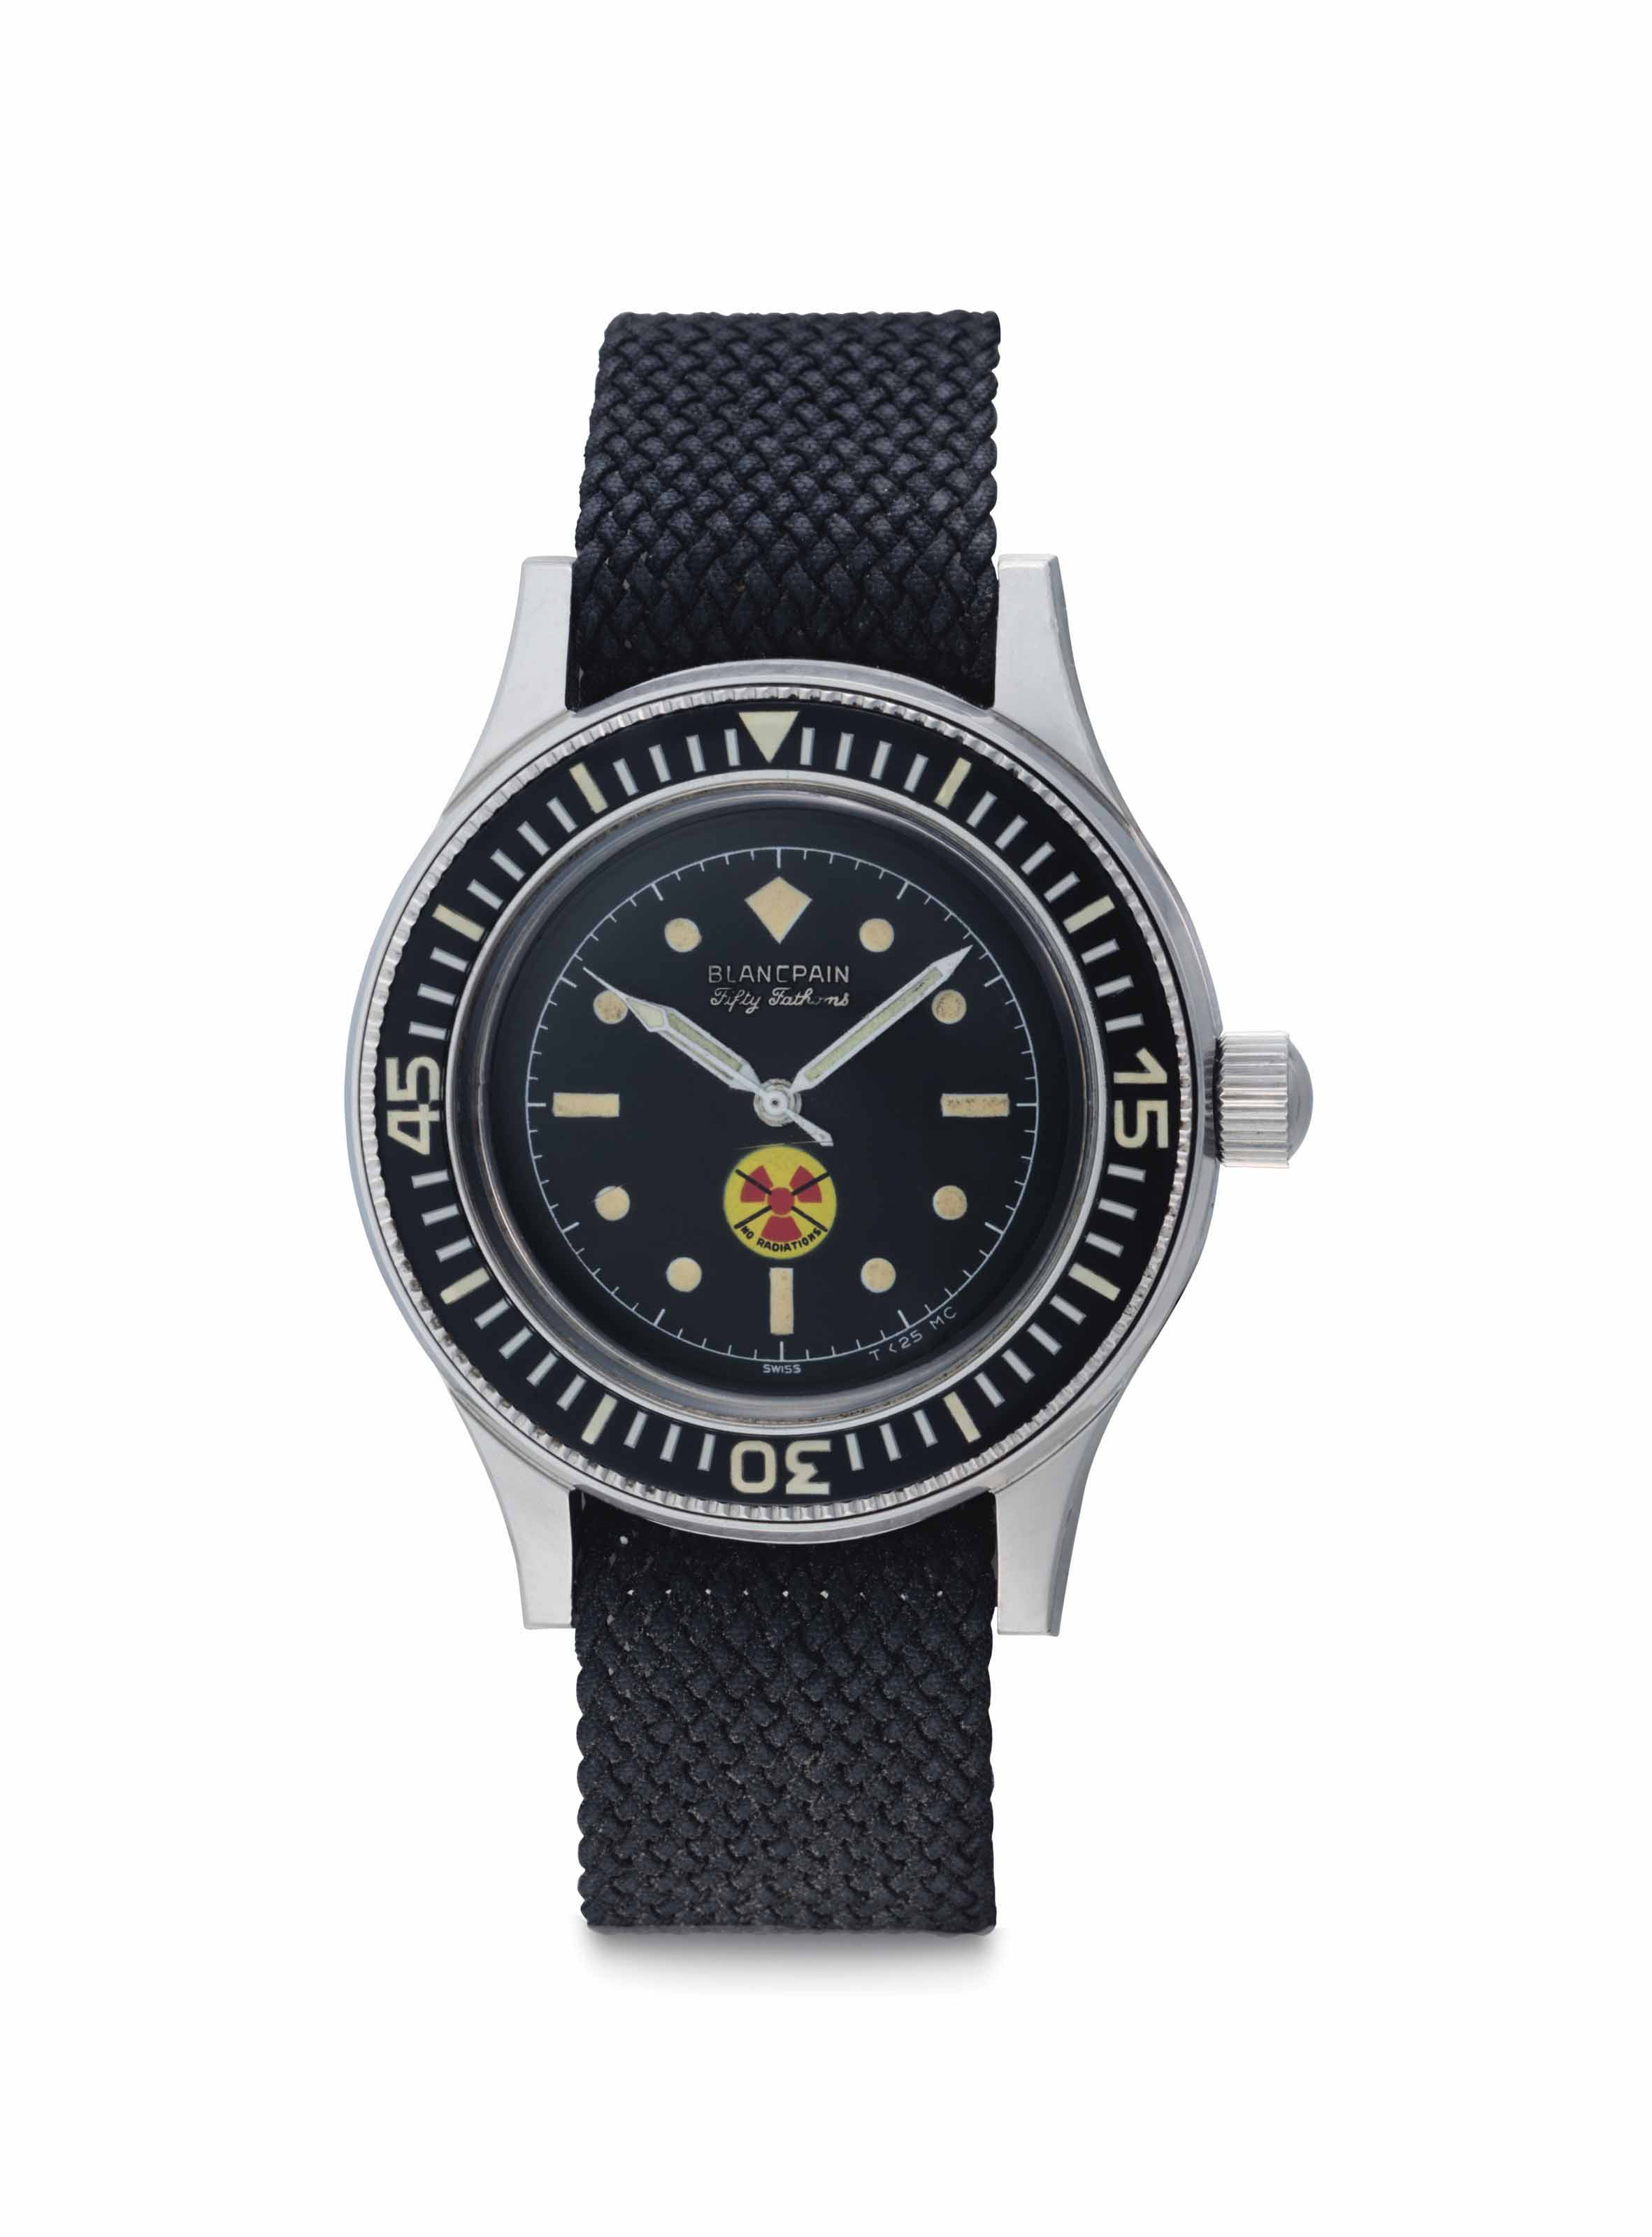 Blancpain. A Rare Stainless Steel Automatic Anti-Magnetic Diver's Wristwatch with Center Seconds, Made for the German Military